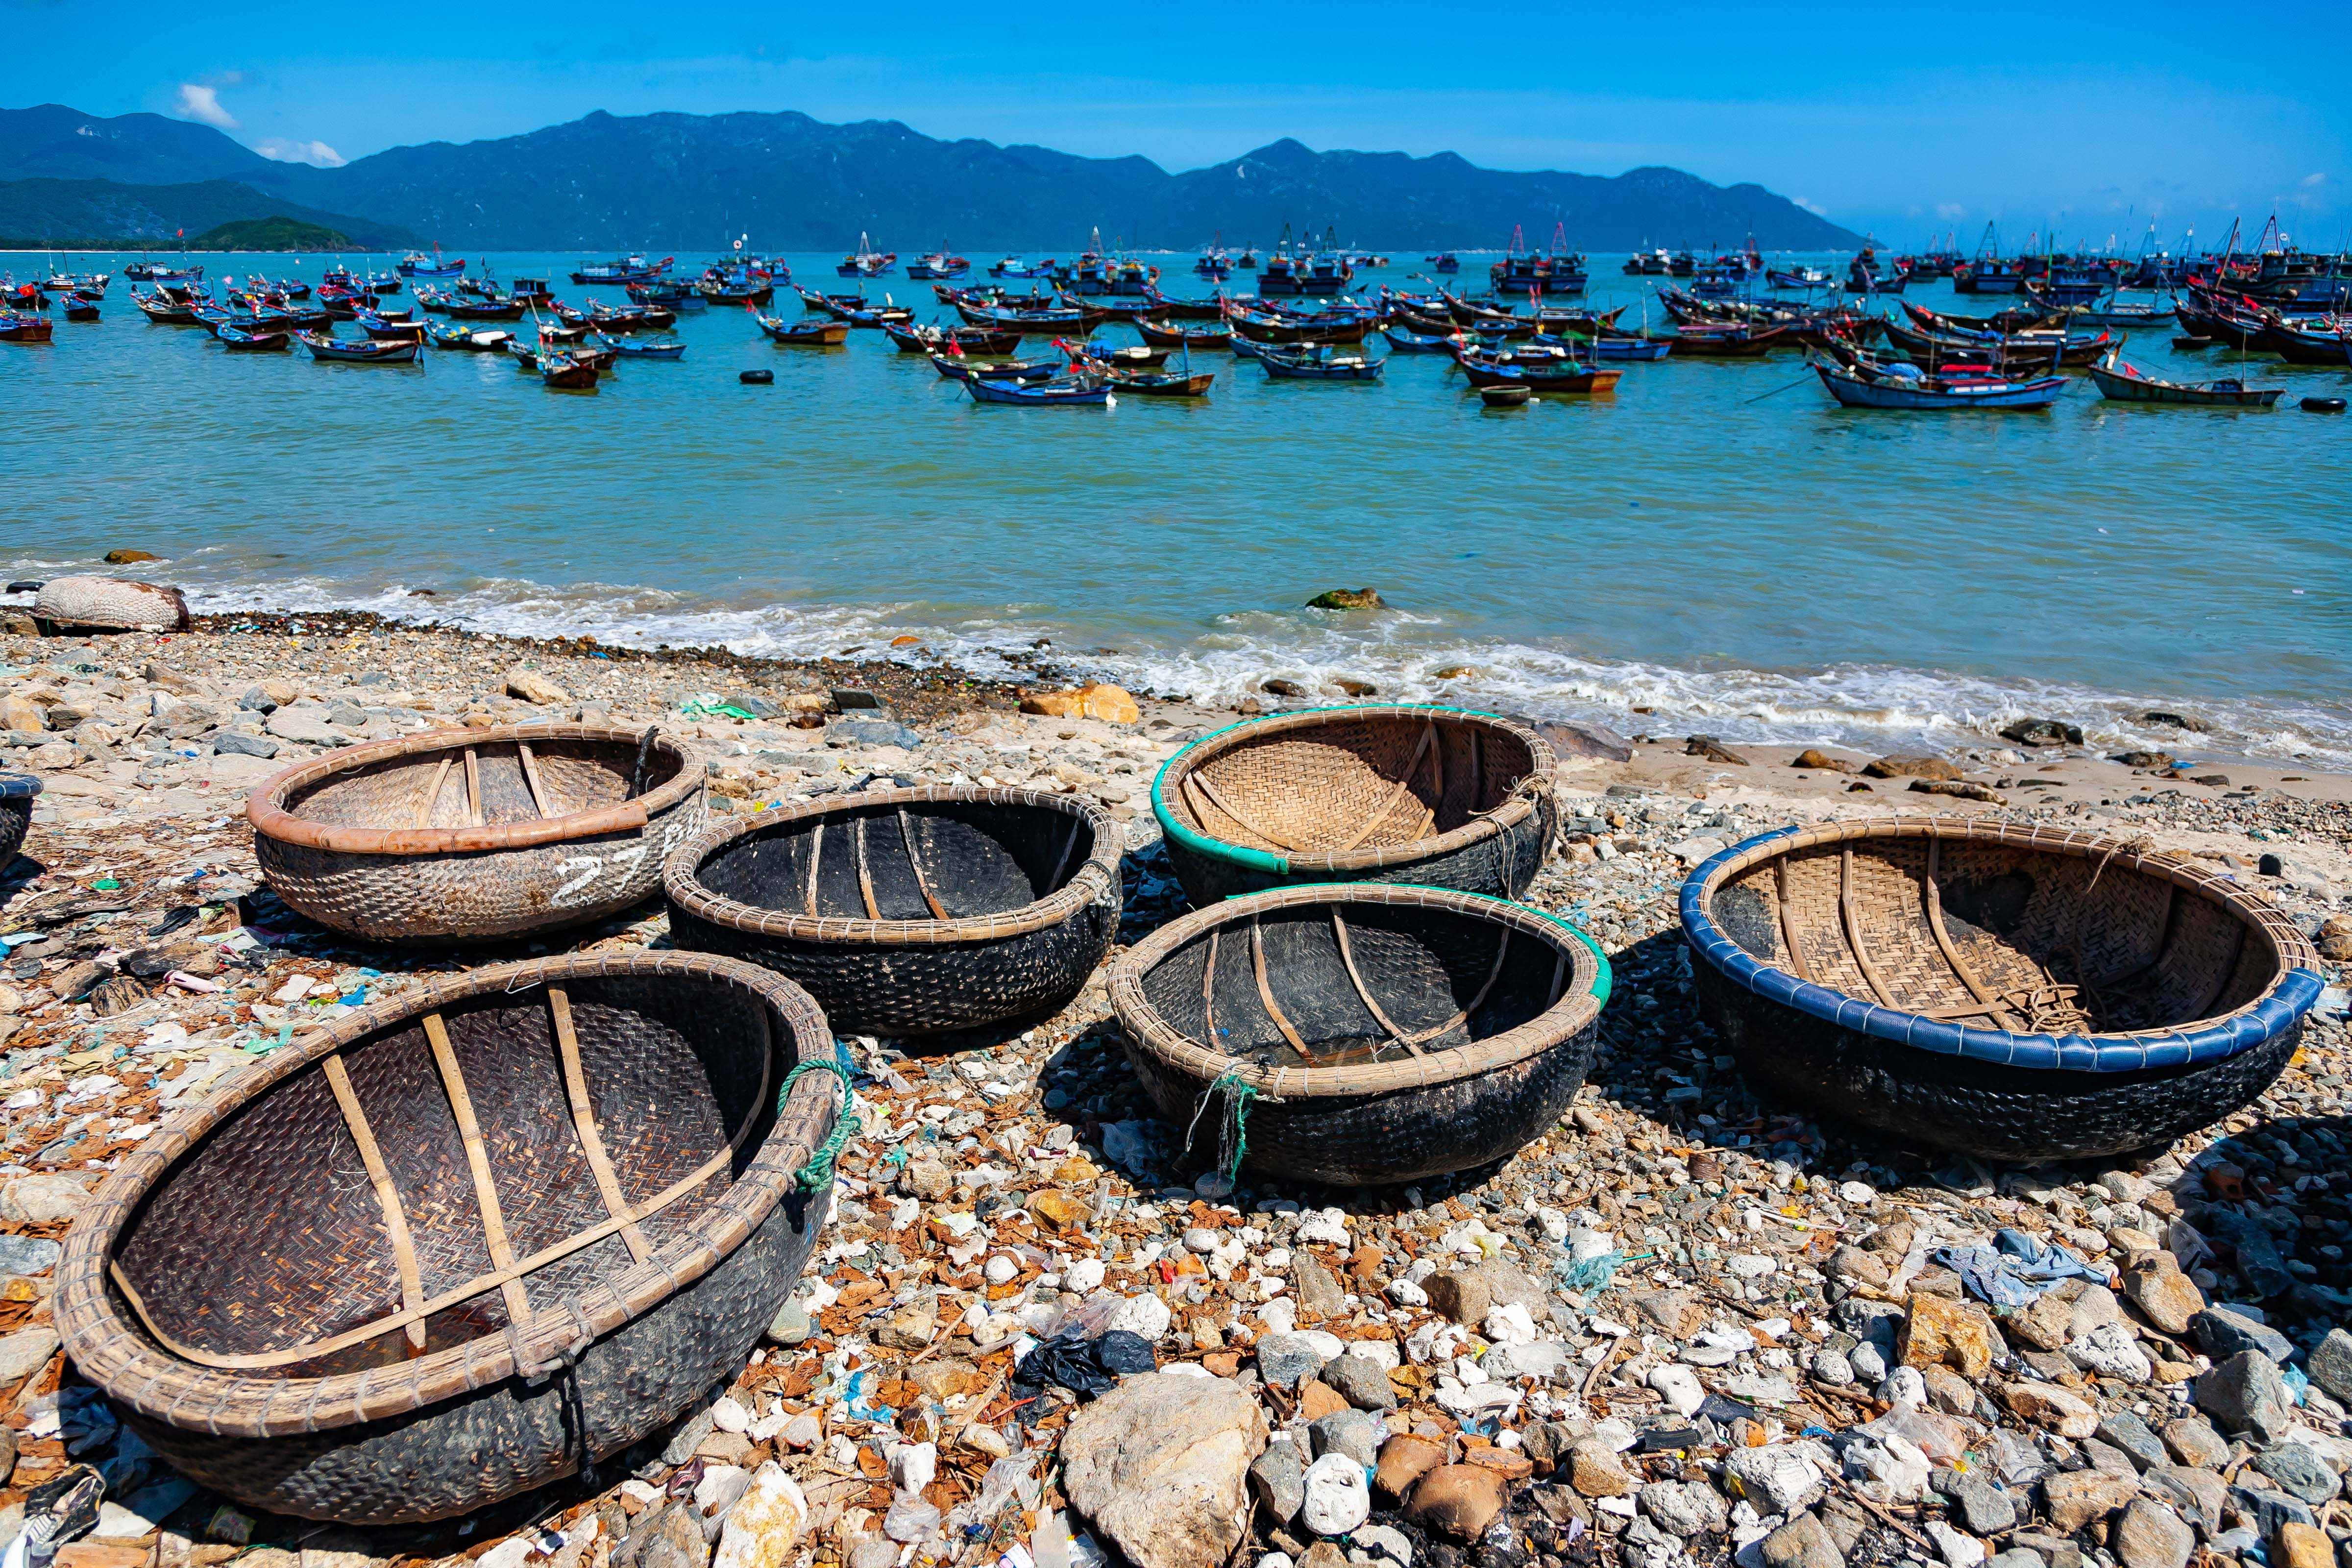 Vietnam, Khanh Hoa Prov, Fishing Baskets And Boats, 2010, IMG 2258